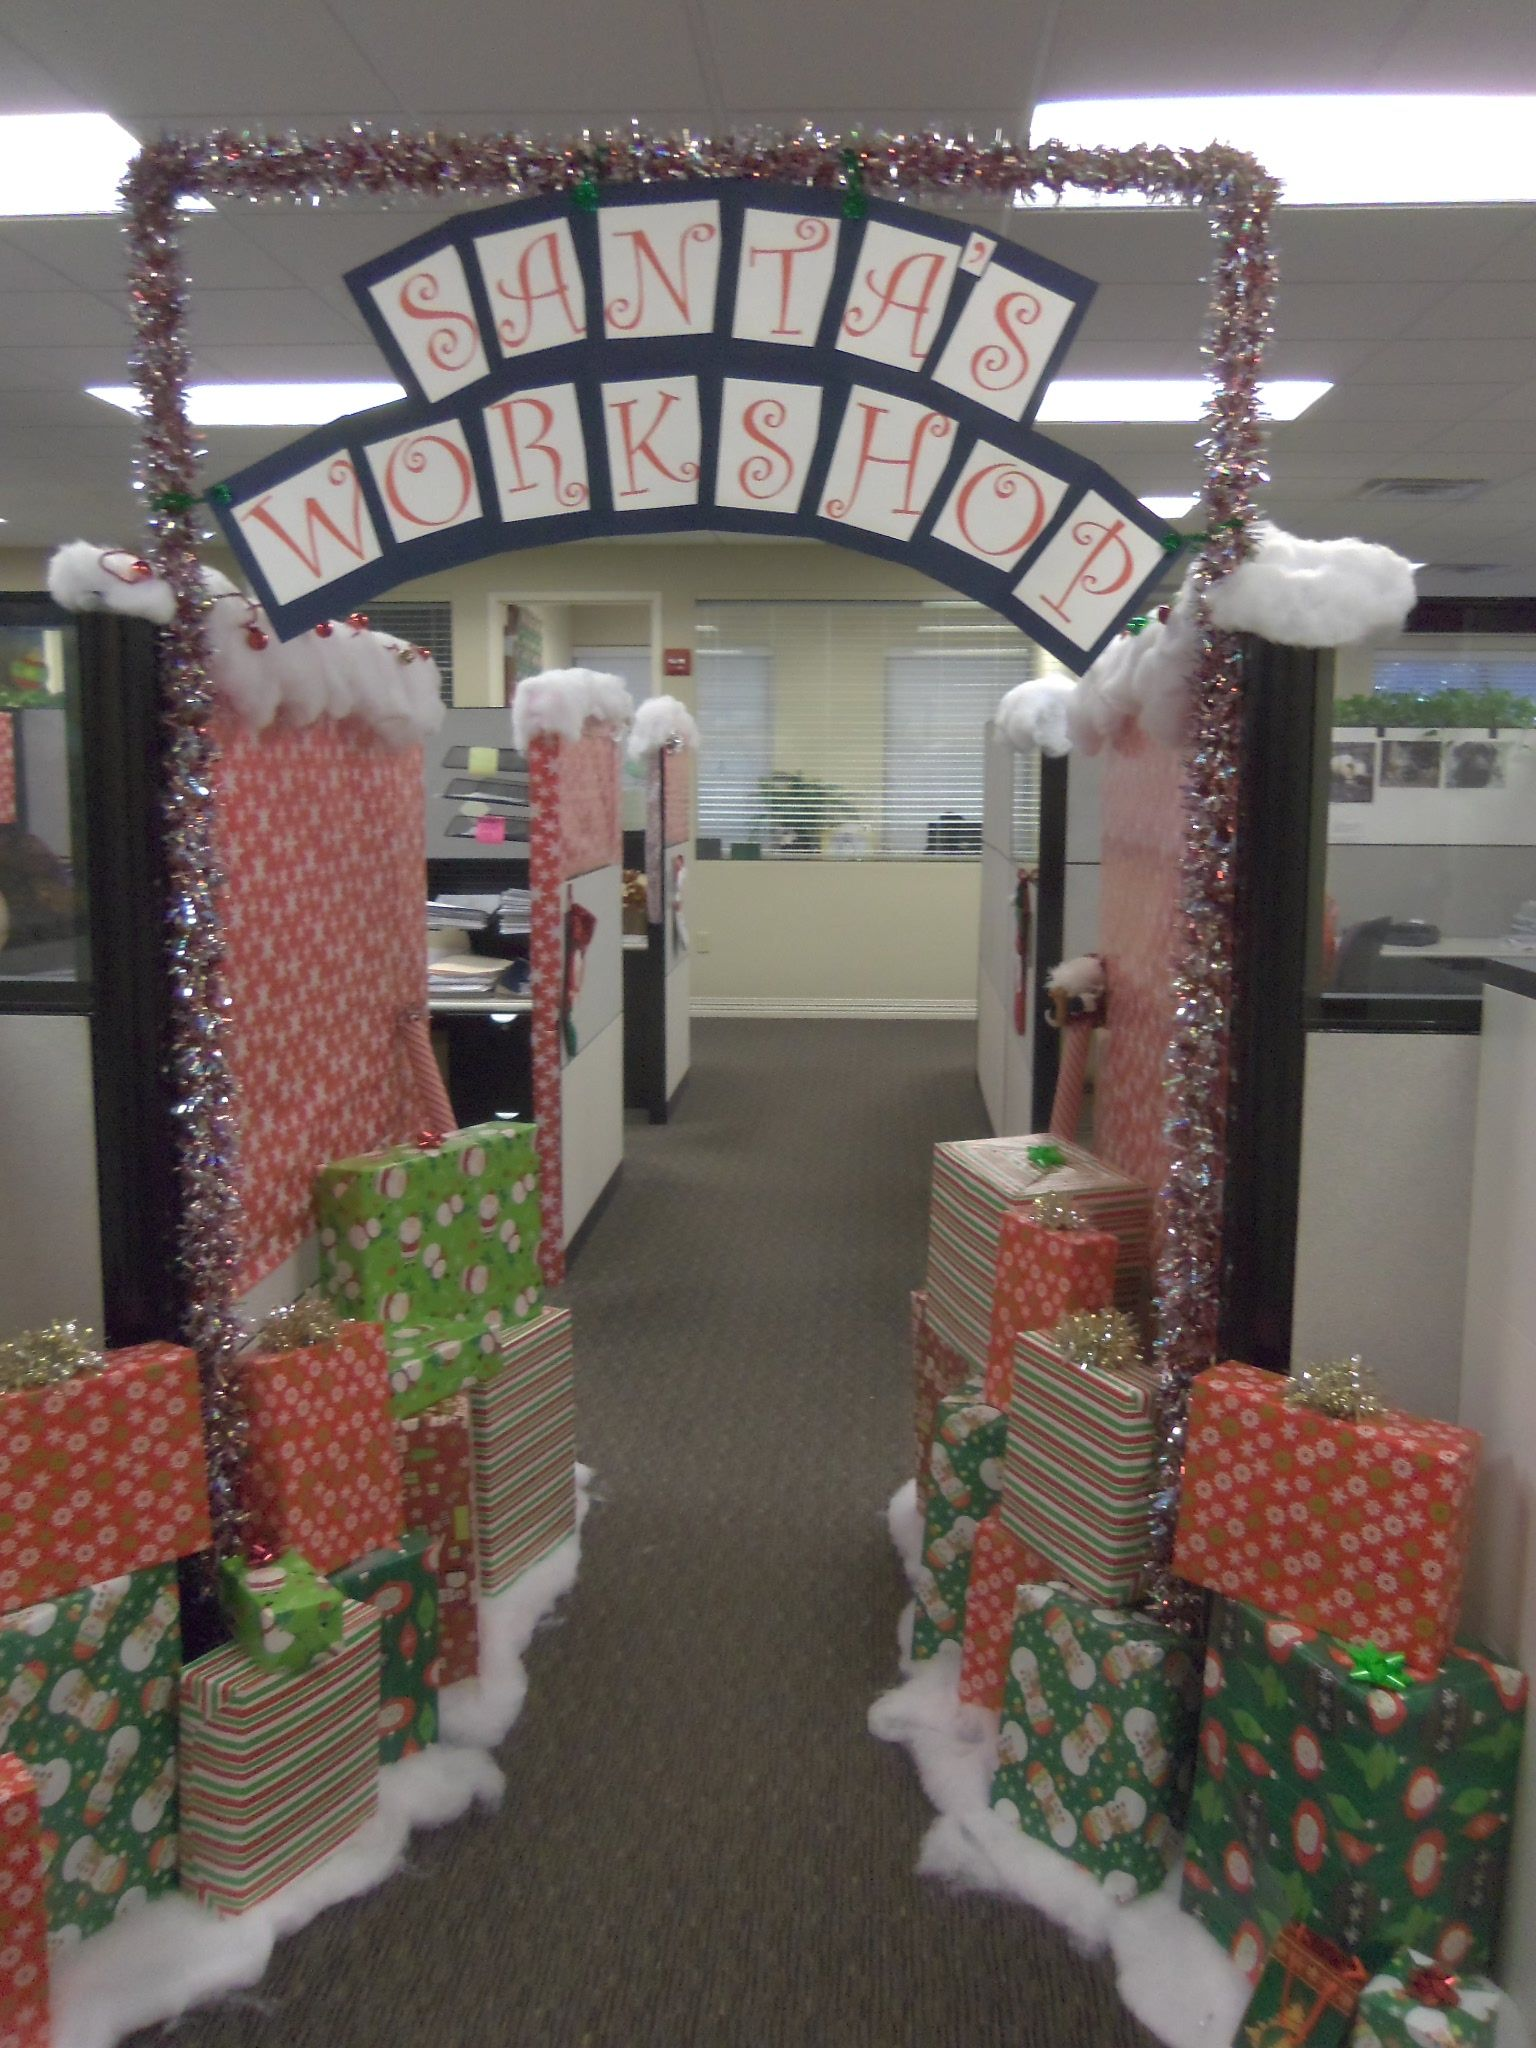 christmas decorations can boost morale at the office leland management embraces the season and encourages the holiday spirit